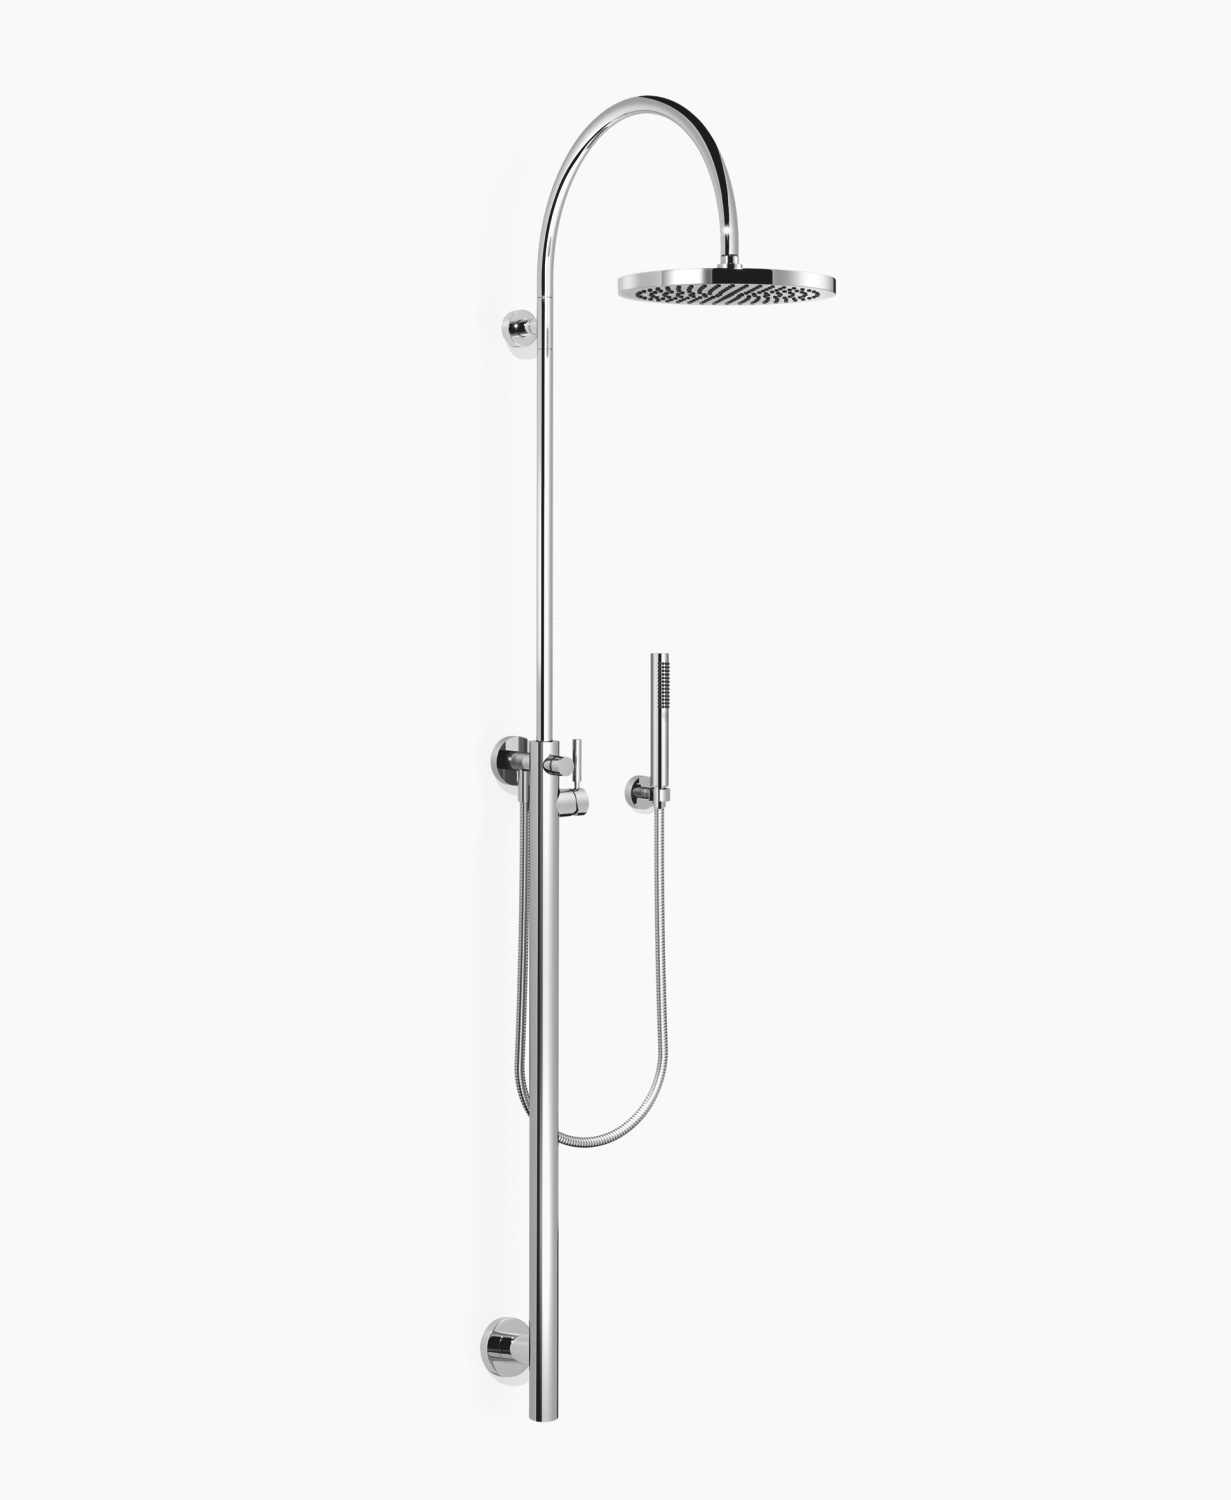 Shower system with single-lever shower mixer for wall mounting with fixed and hand shower - polished chrome